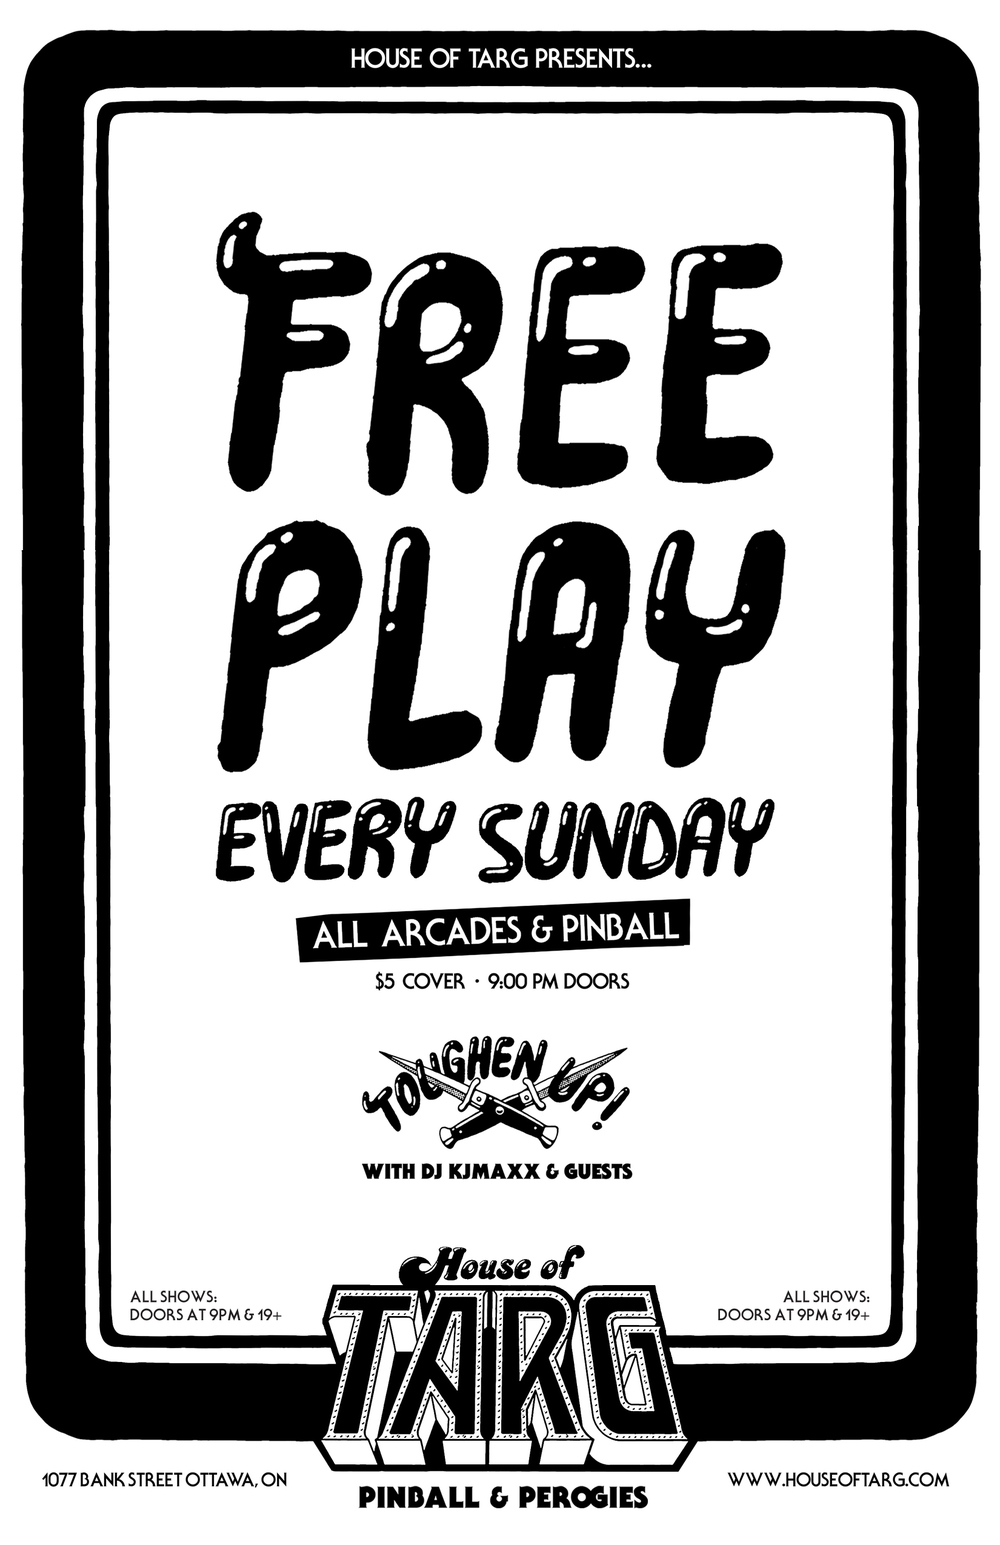 Sunday Nights with DJ KJAMXX & Guests. FREEPLAY Pinball & Vids STARTS AFTER 9pm - $5